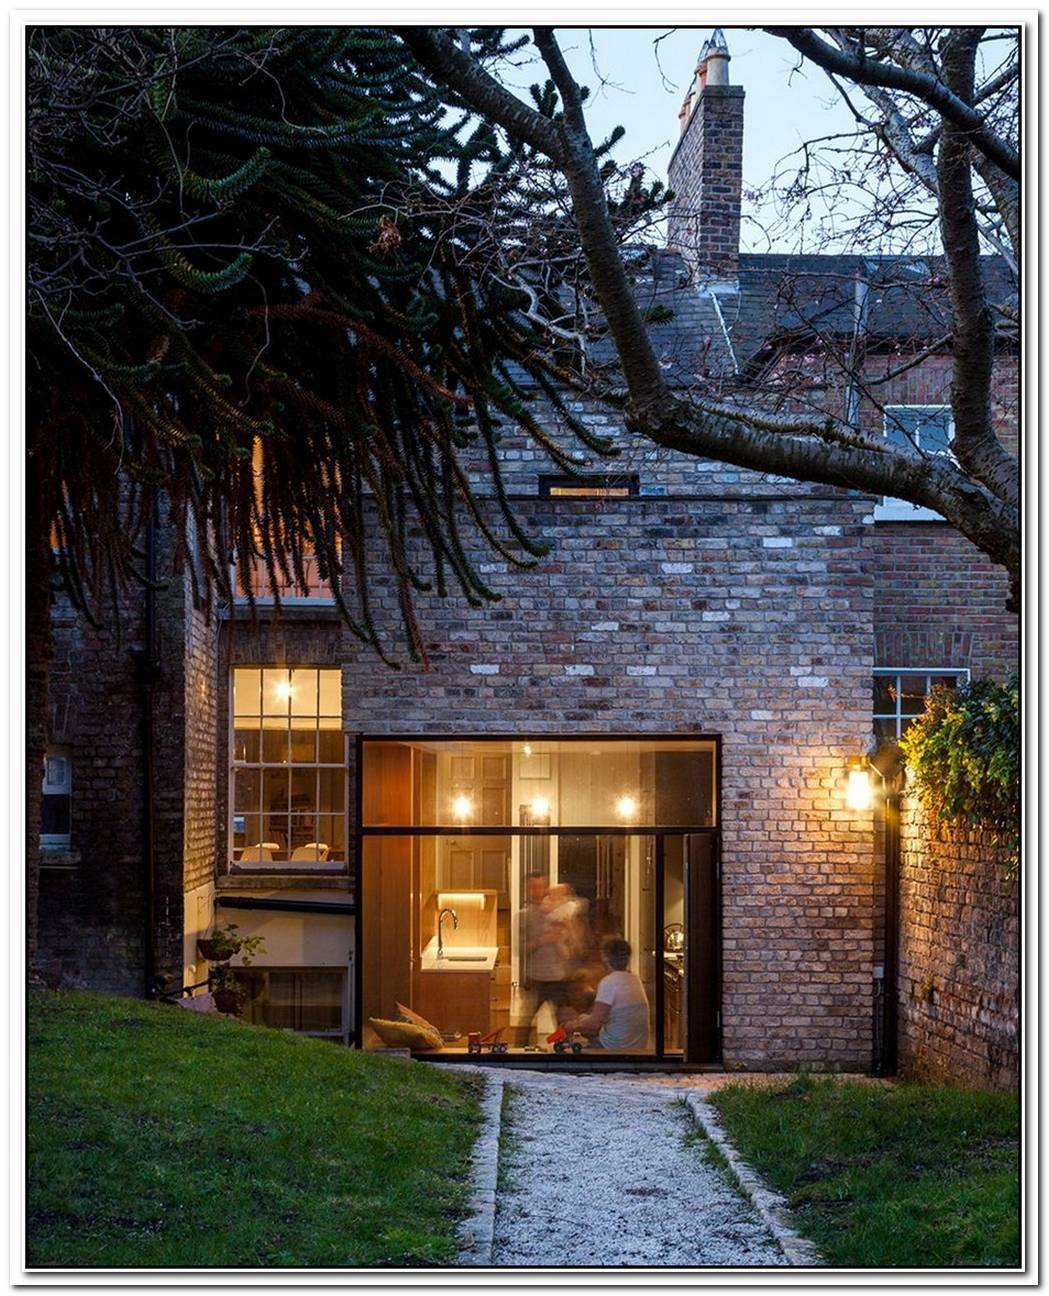 74 Sqm Simple Brick Industrial Structure Built In 1890 Renovation